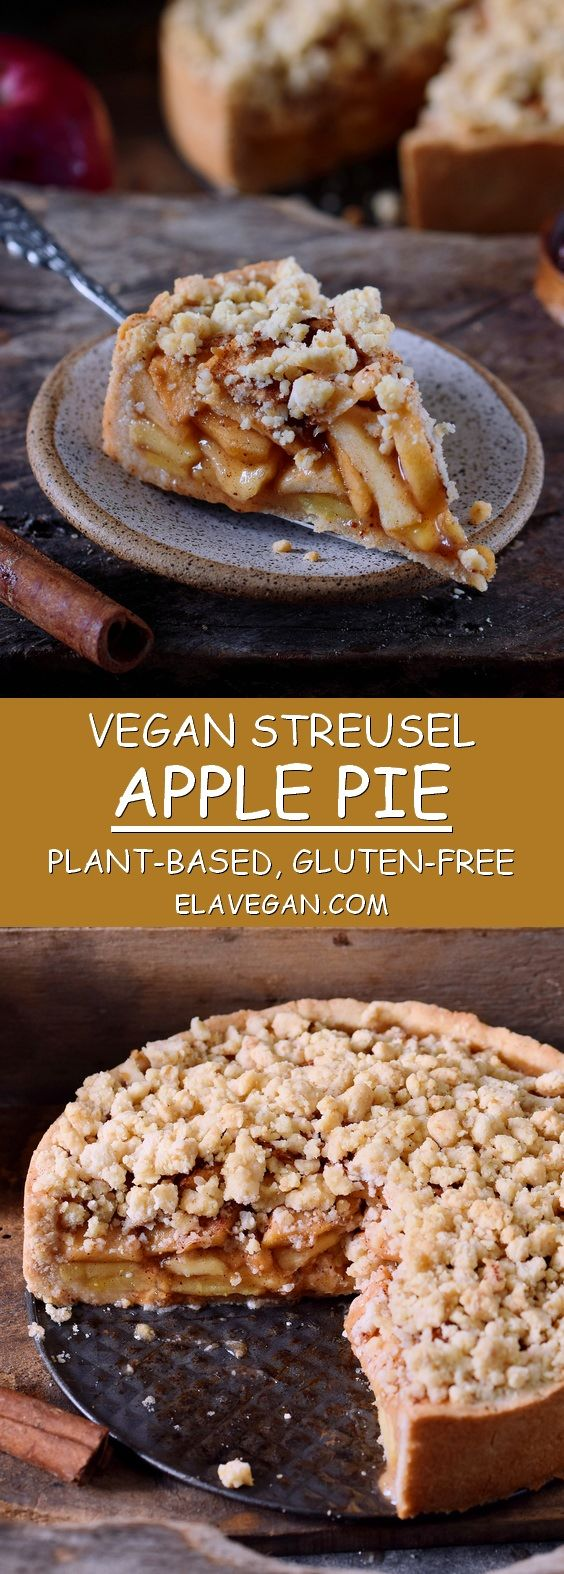 Photo of Vegan Apple Pie with Streusel | gluten-free recipe – Elavegan